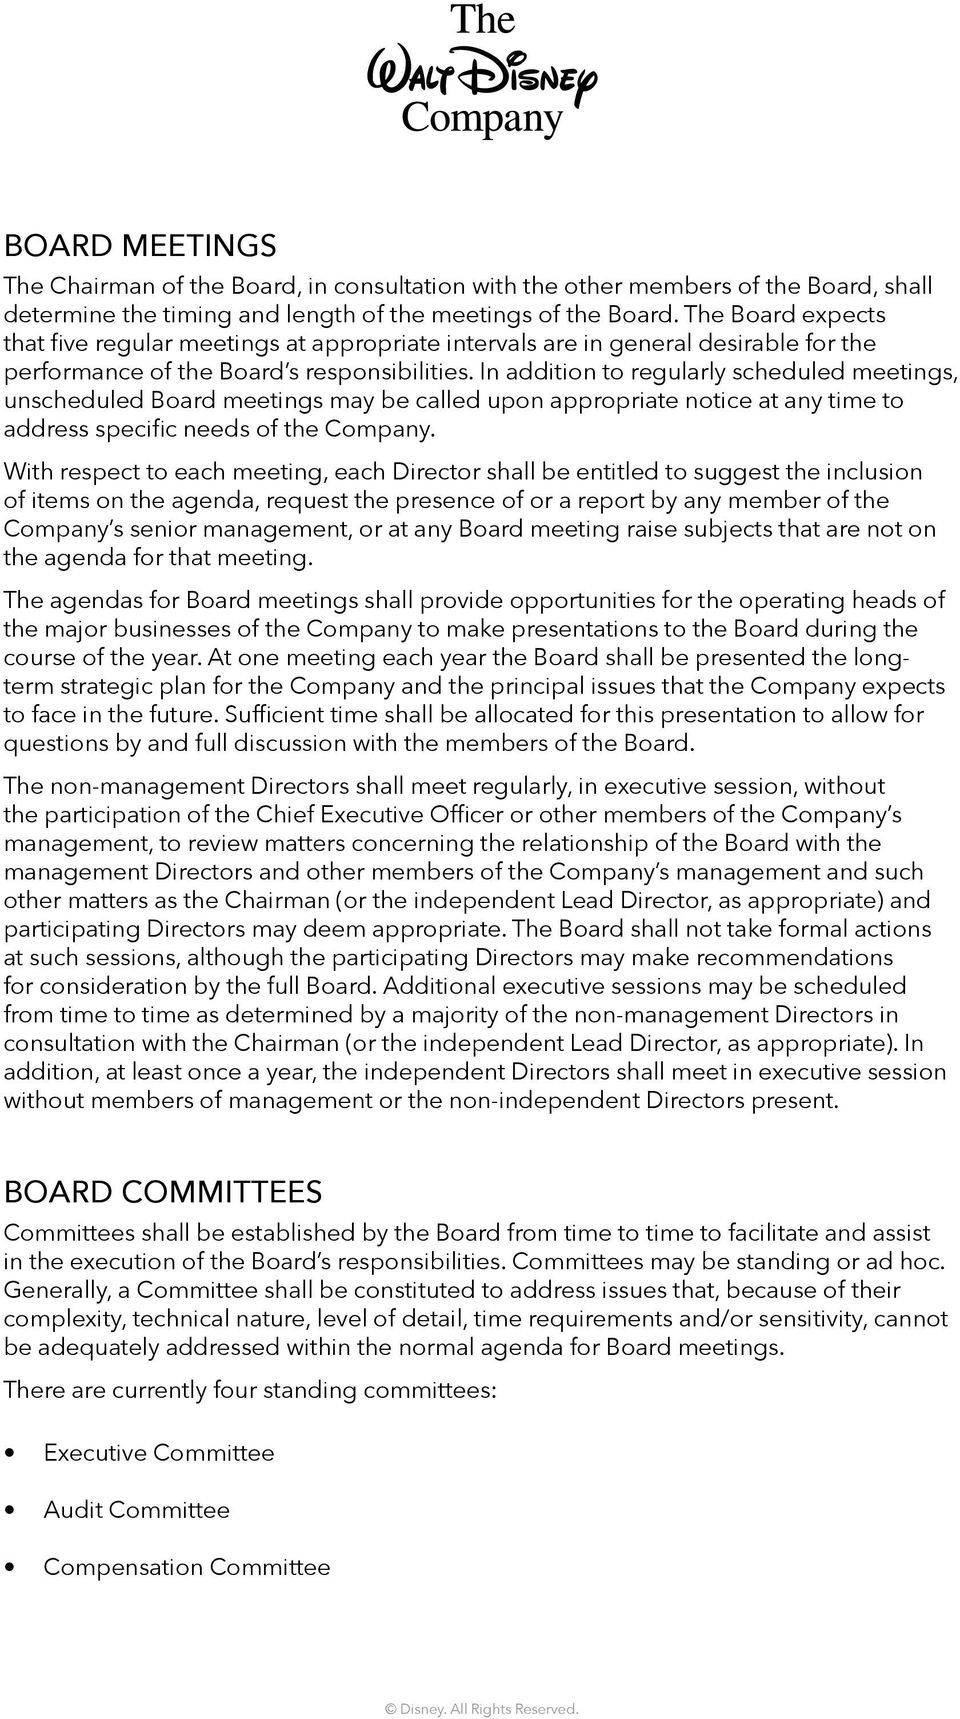 In addition to regularly scheduled meetings, unscheduled Board meetings may be called upon appropriate notice at any time to address specific needs of the Company.